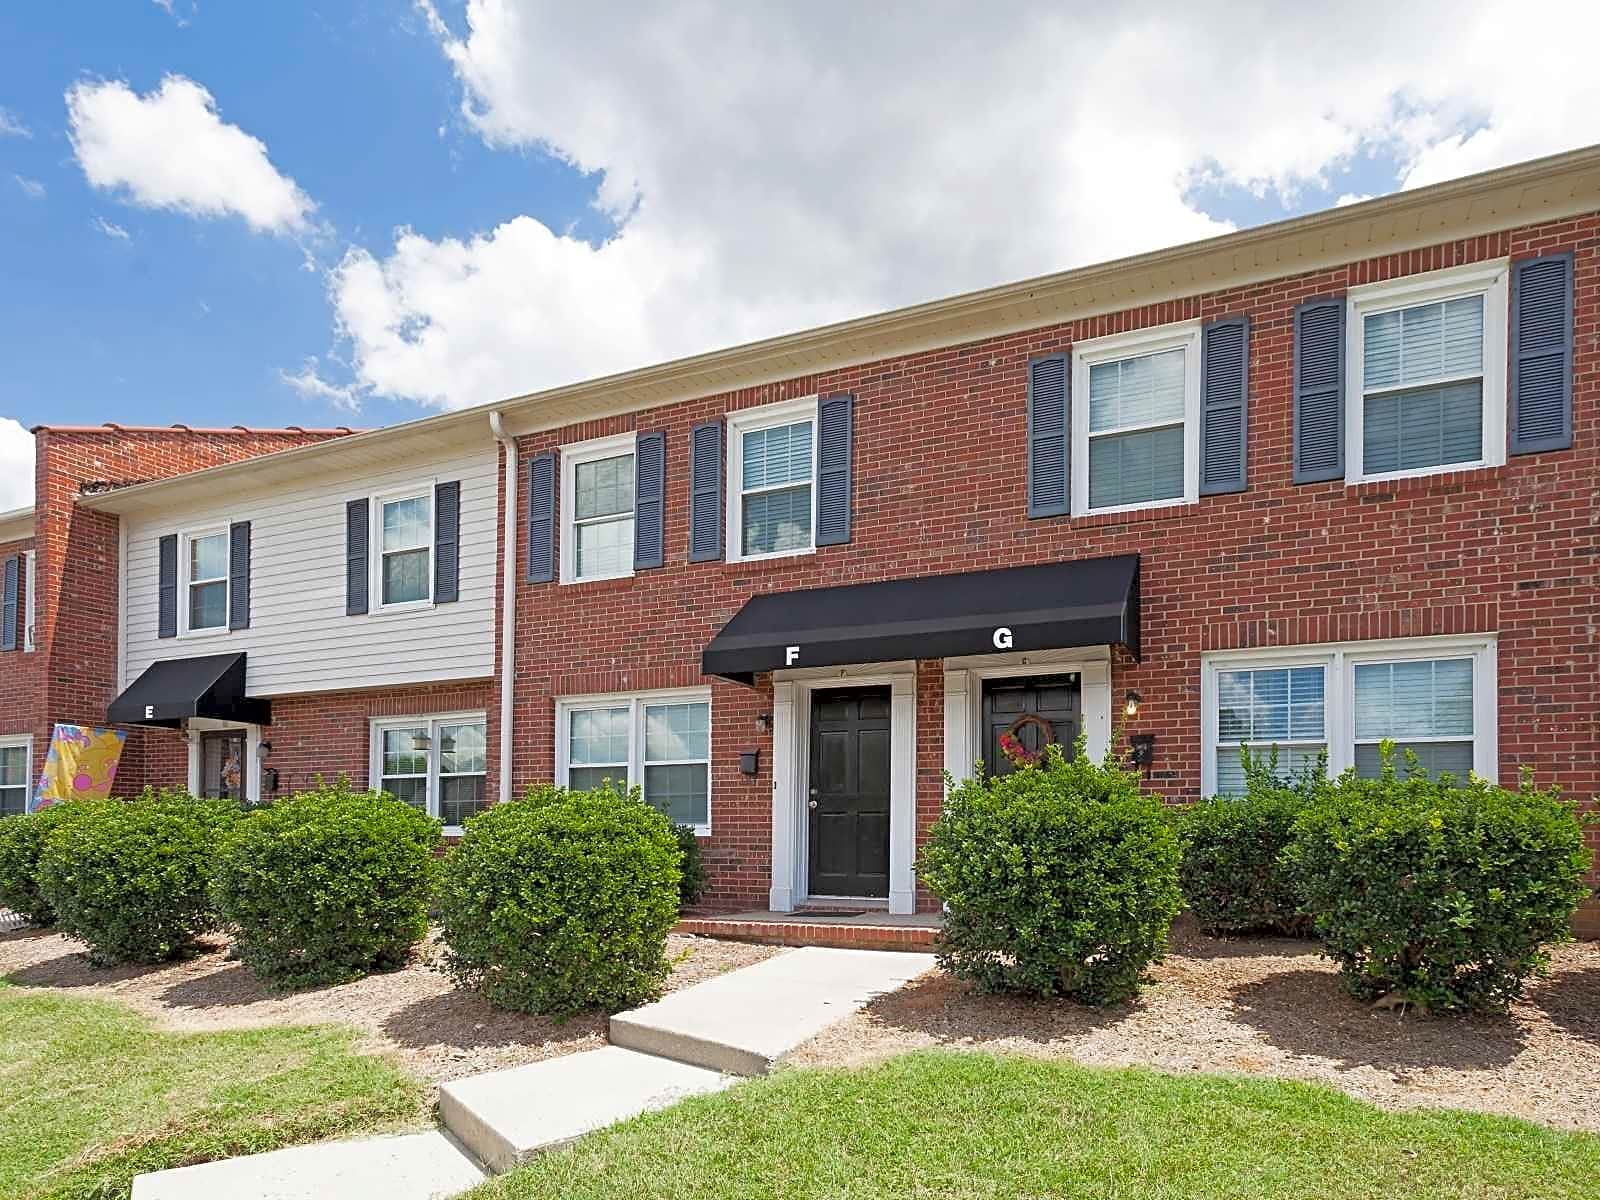 Apartments Near HPU Oakview Terrace for High Point University Students in High Point, NC